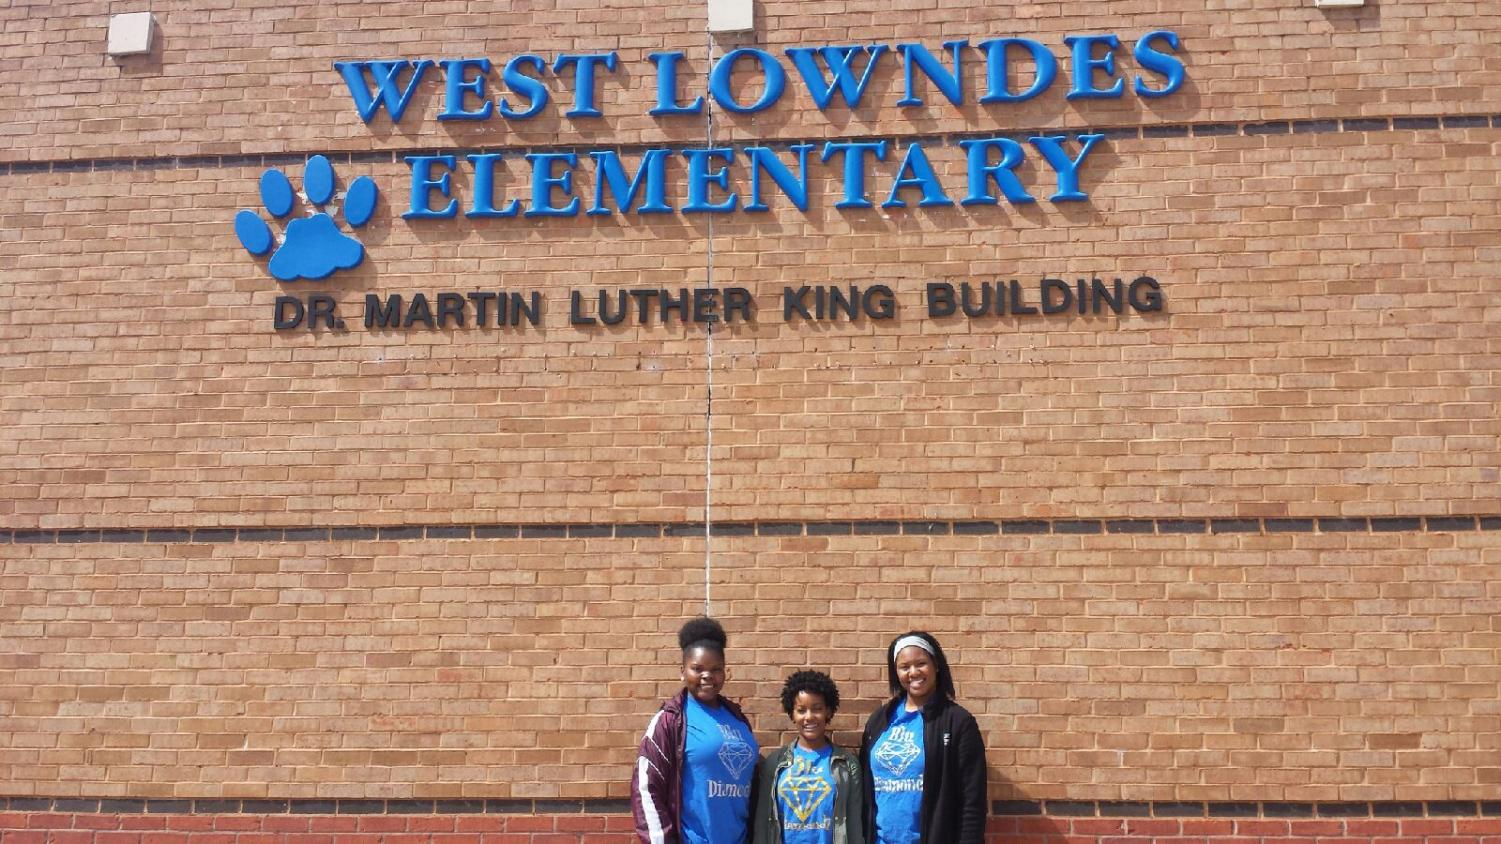 Three Blu Diamondz members, Tija Johnson, Ashley McPherson, and Ta'Kiya Moore, prepare for the Easter Egg Hunt and book reading at West Lowndes Elementary School.